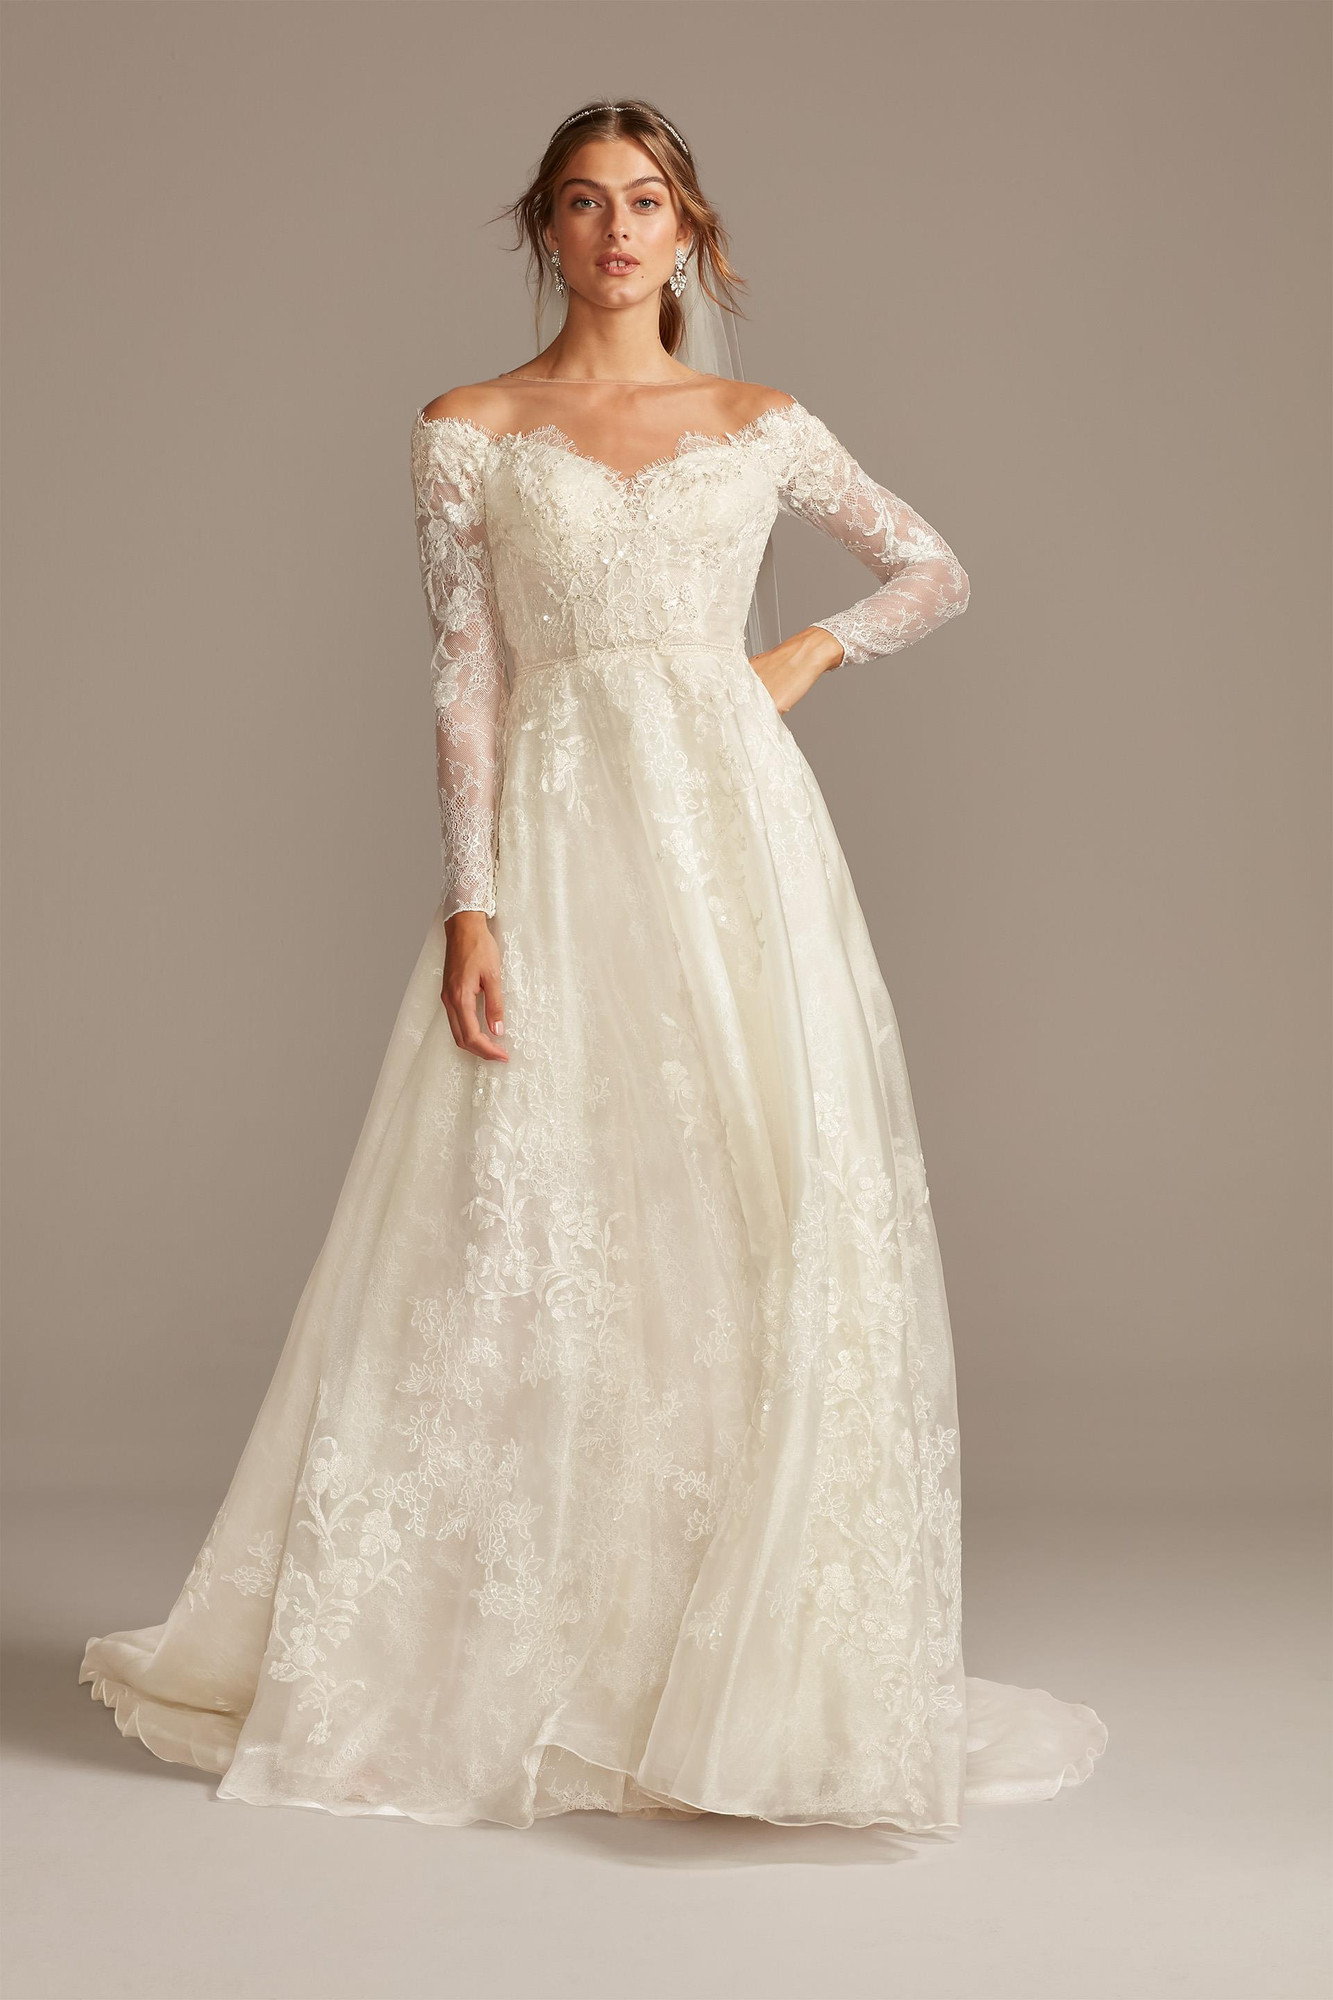 Plus size wedding dresses with sleeves 34 - Fashion Best